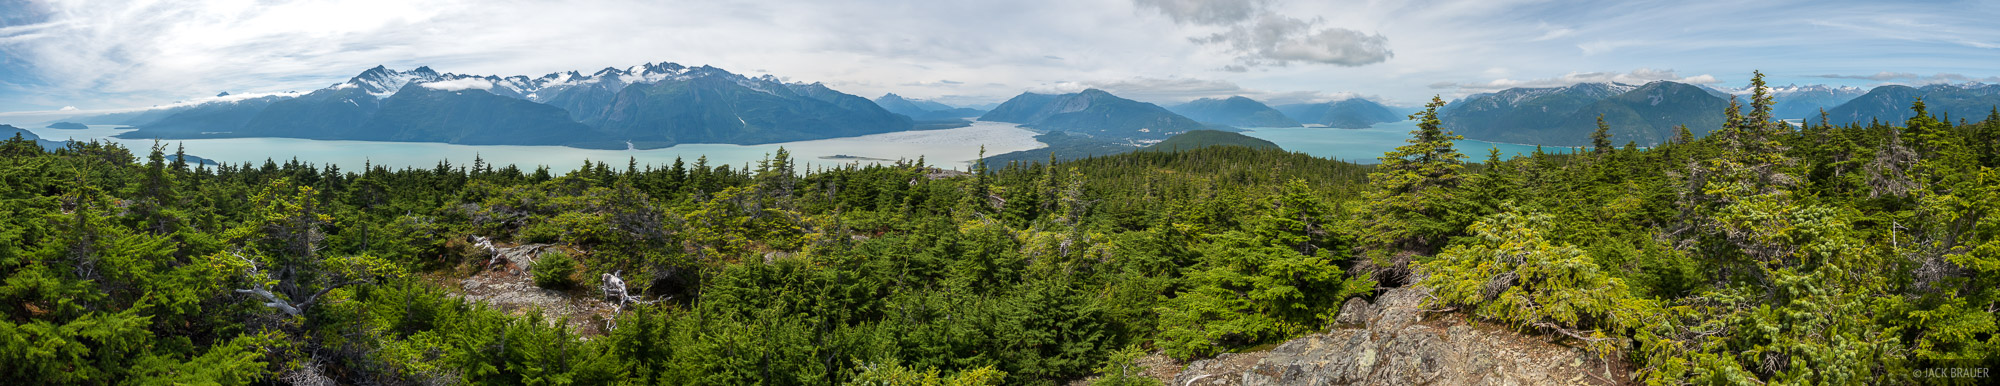 Alaska, Haines, Mount Riley, panorama, Chilkat Inlet, Chilkoot Inlet